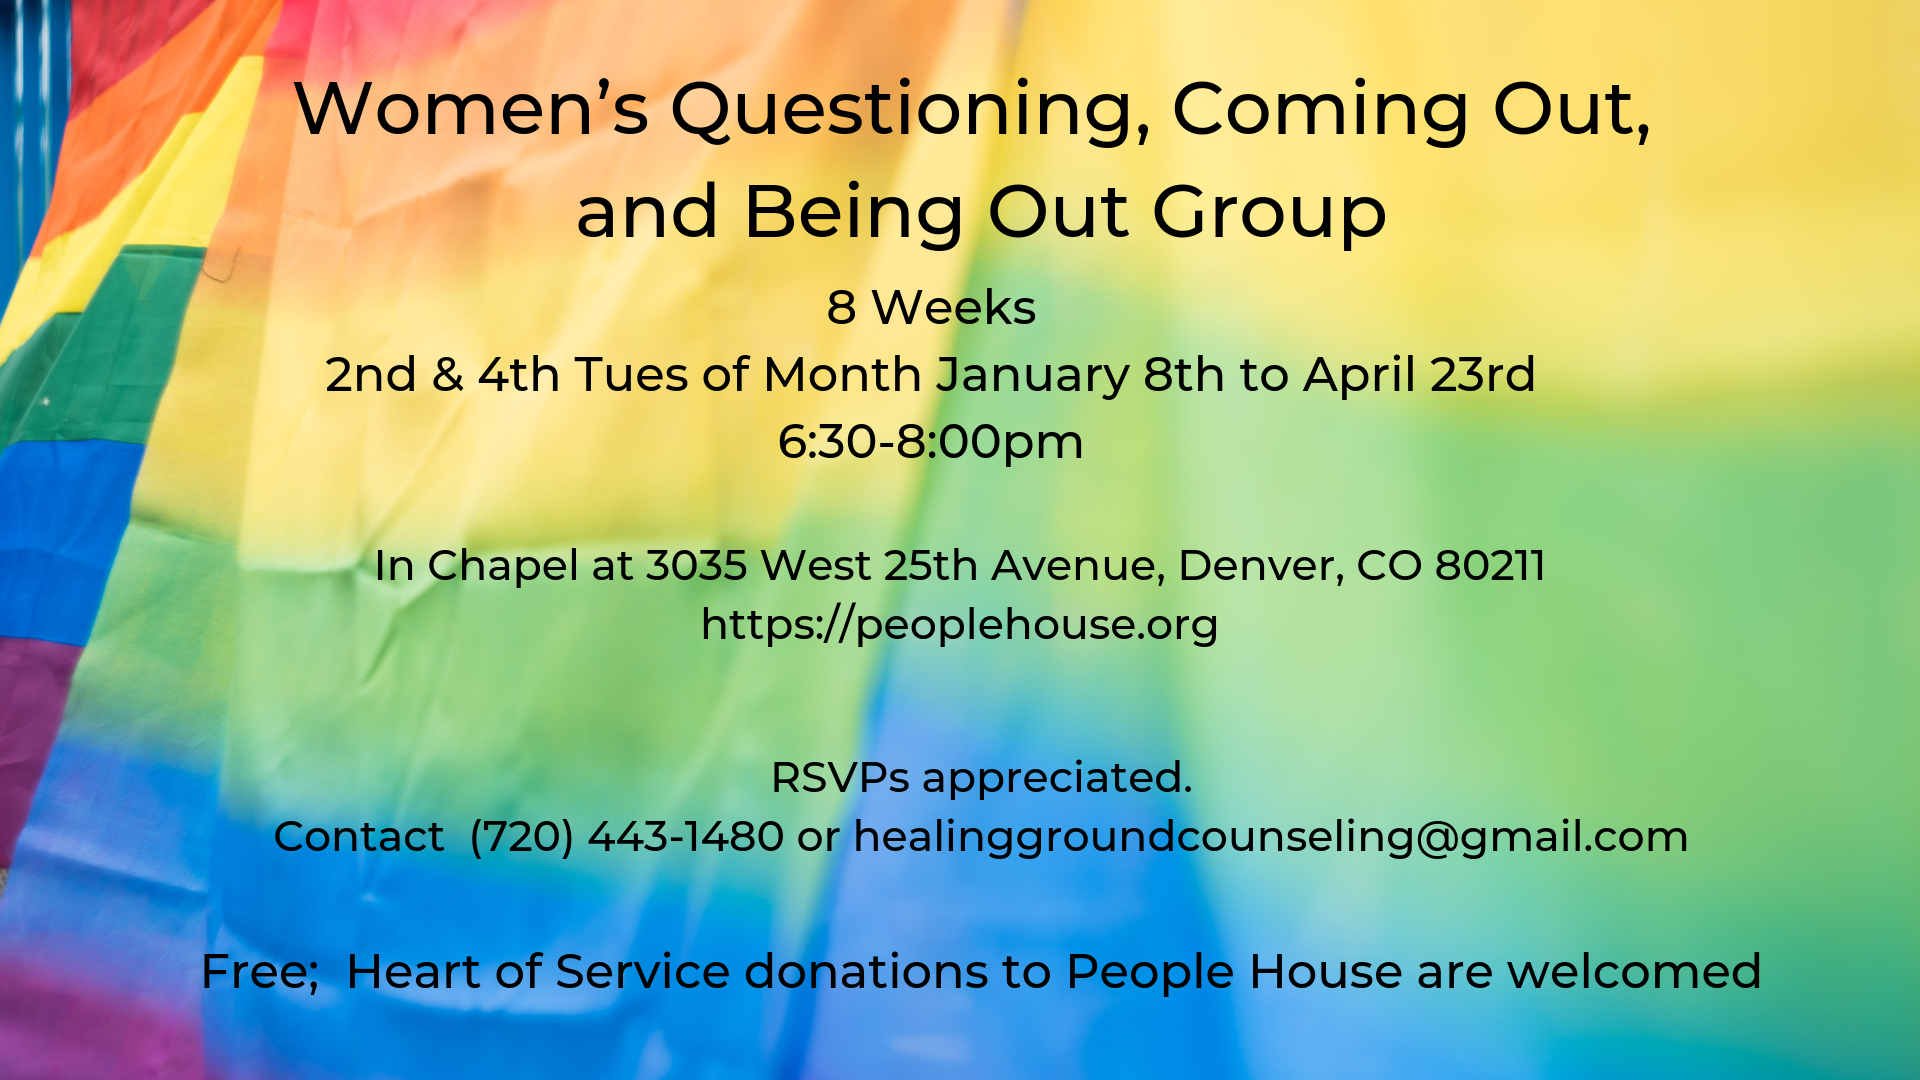 Lesbian Bisexual Queer Denver Counseling Group